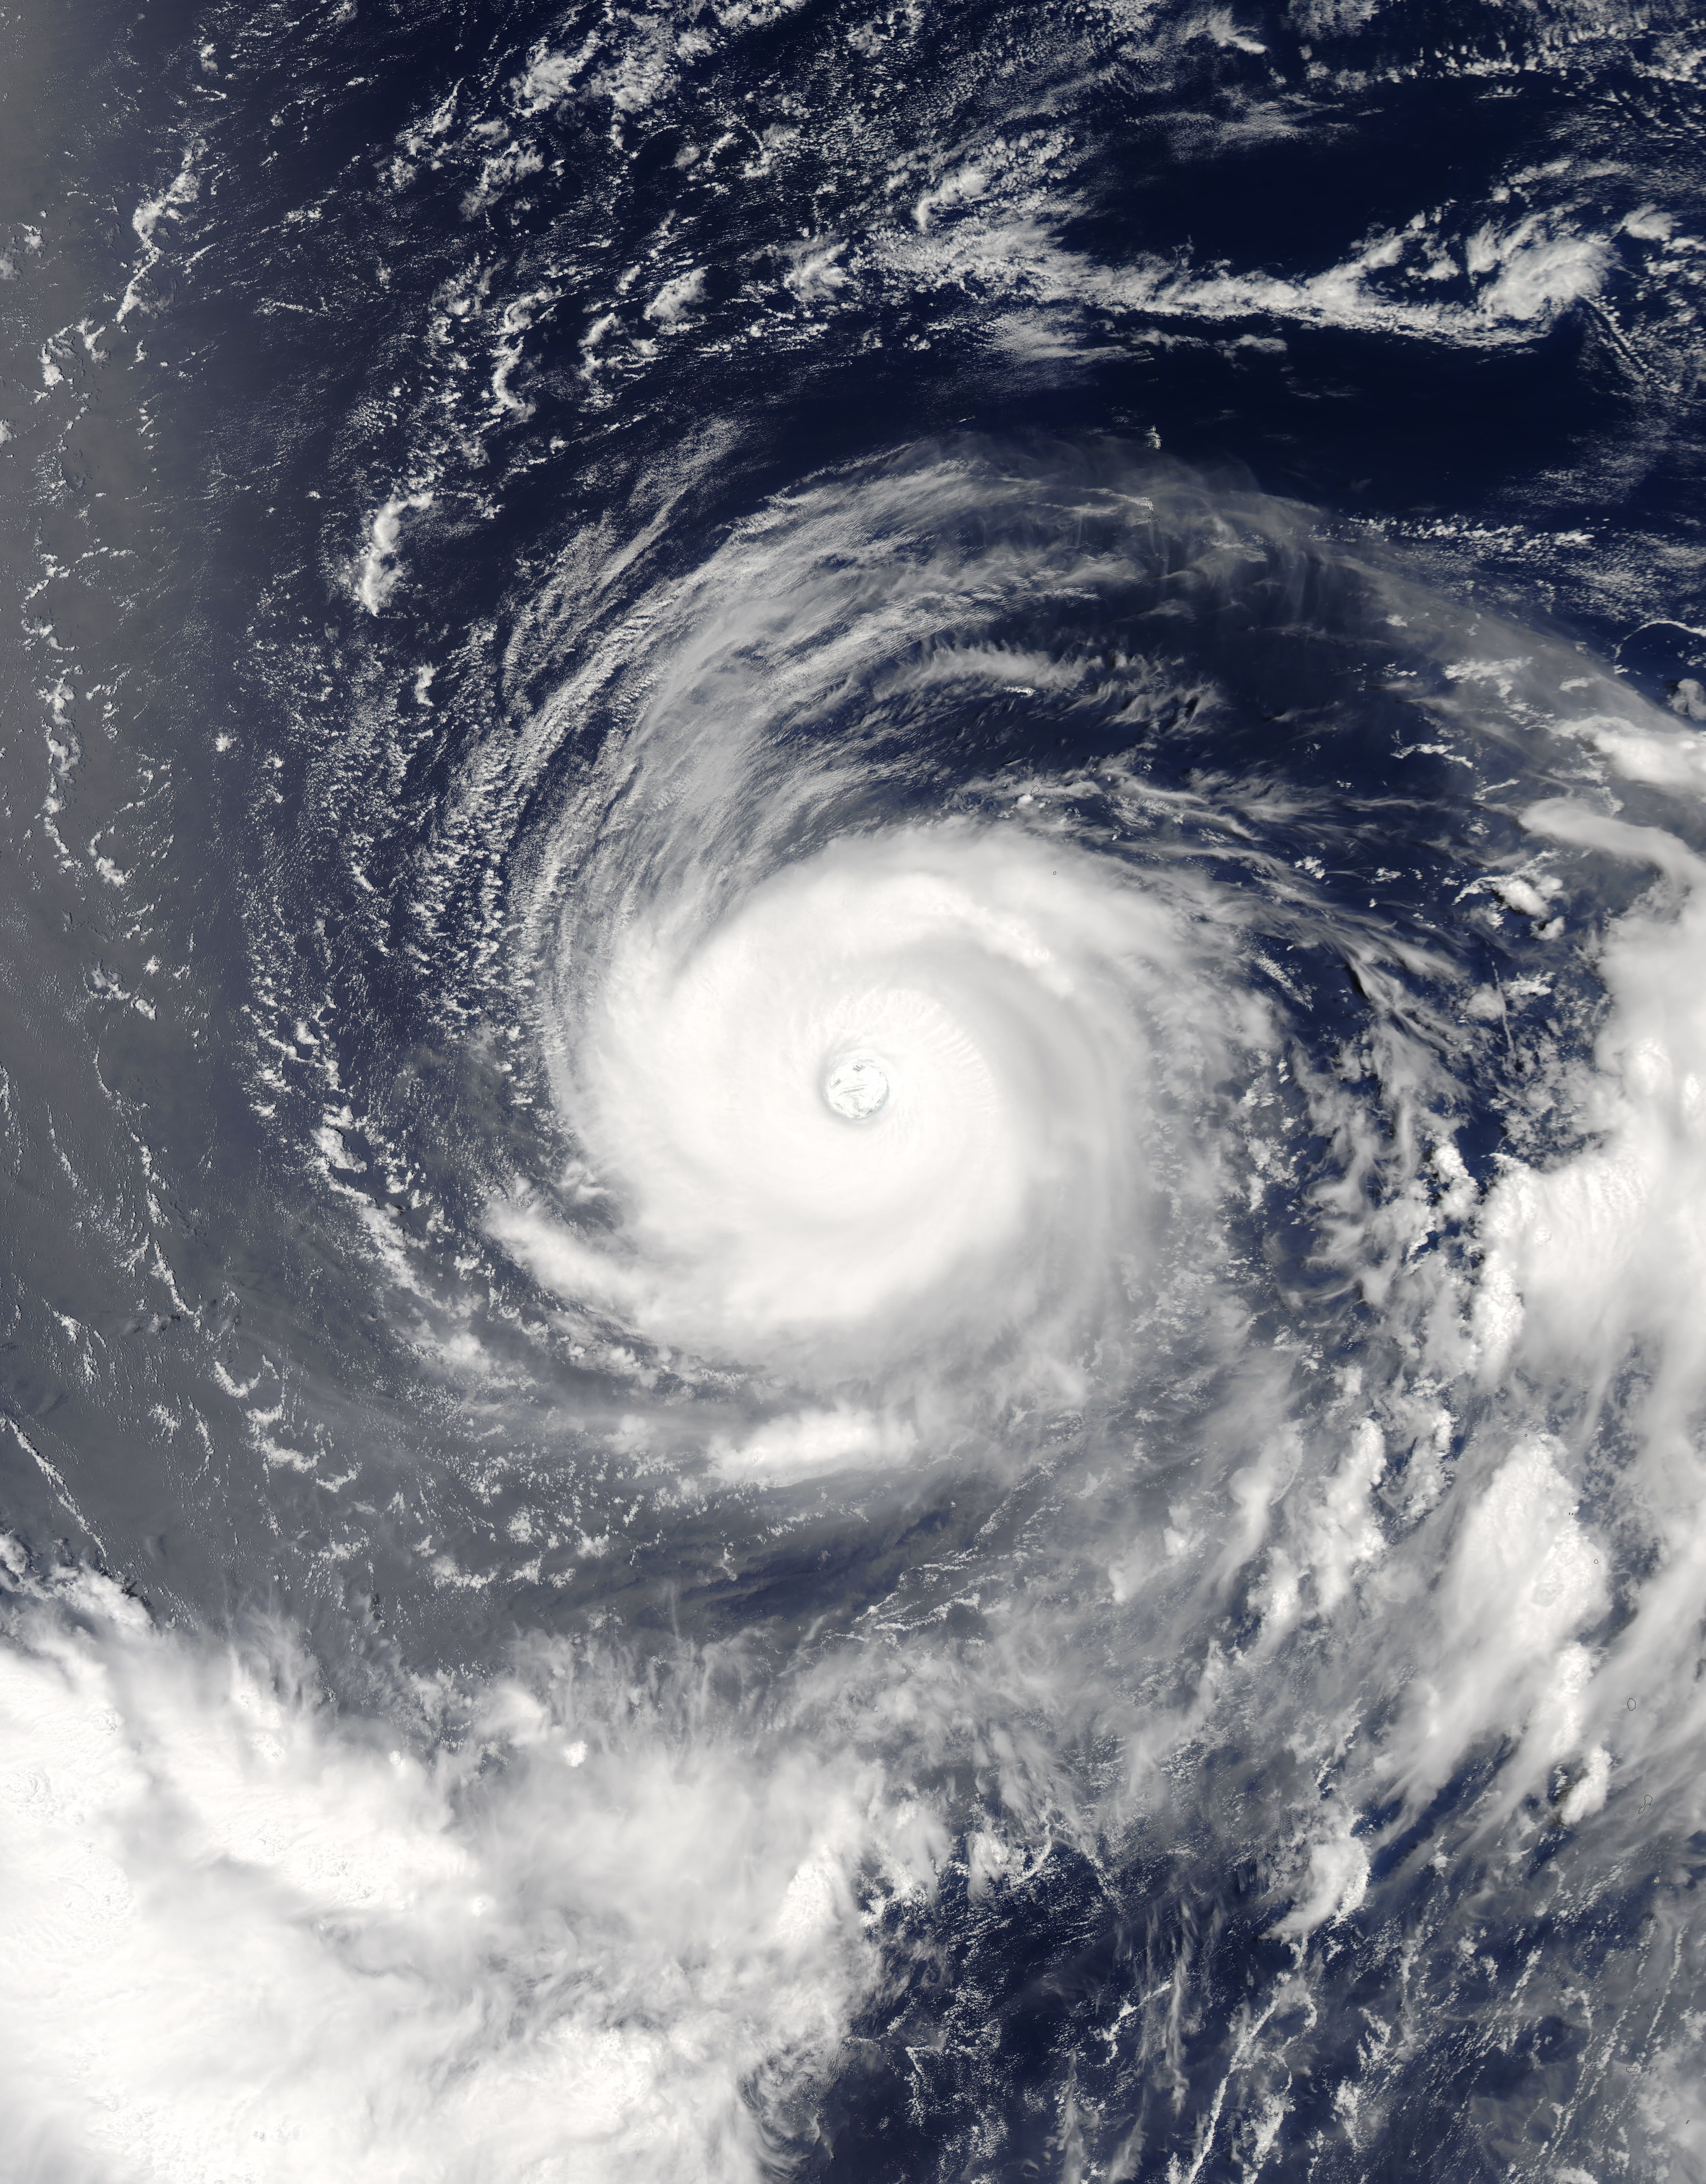 Super Typhoon Noru 7 31 17 Hurricane